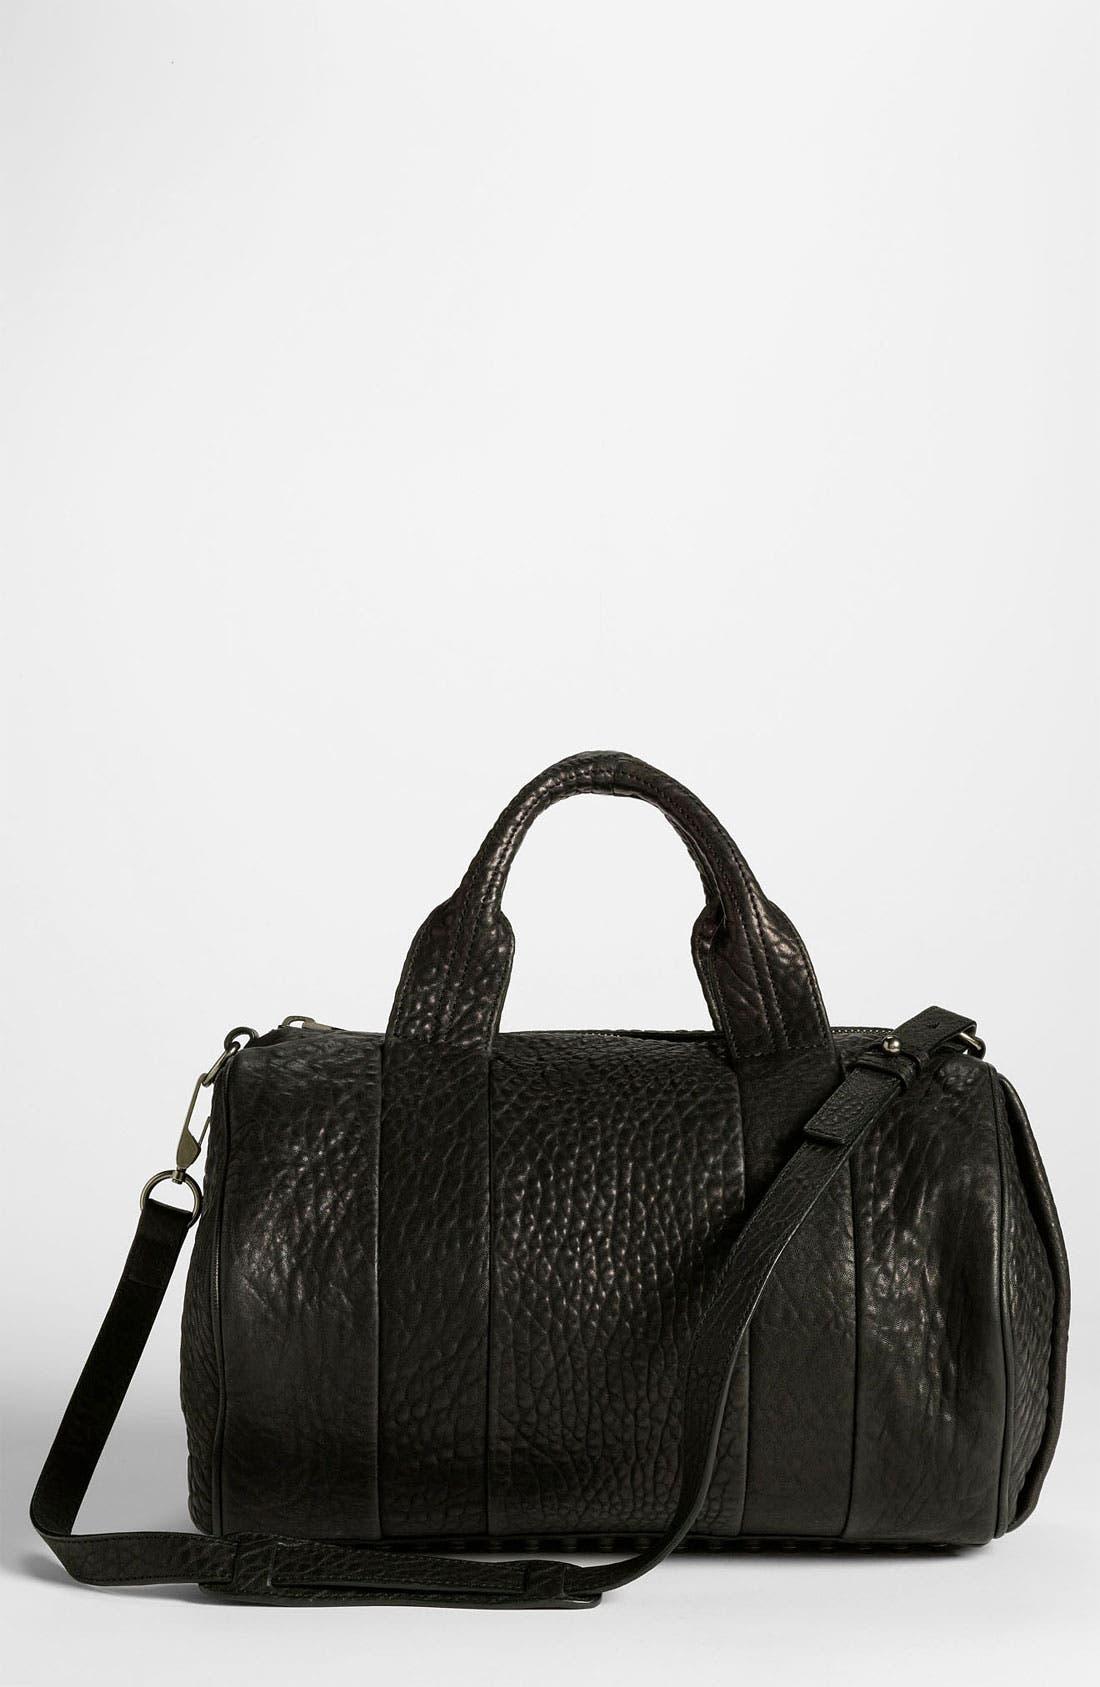 Main Image - Alexander Wang 'Rocco - Black Nickel' Leather Satchel